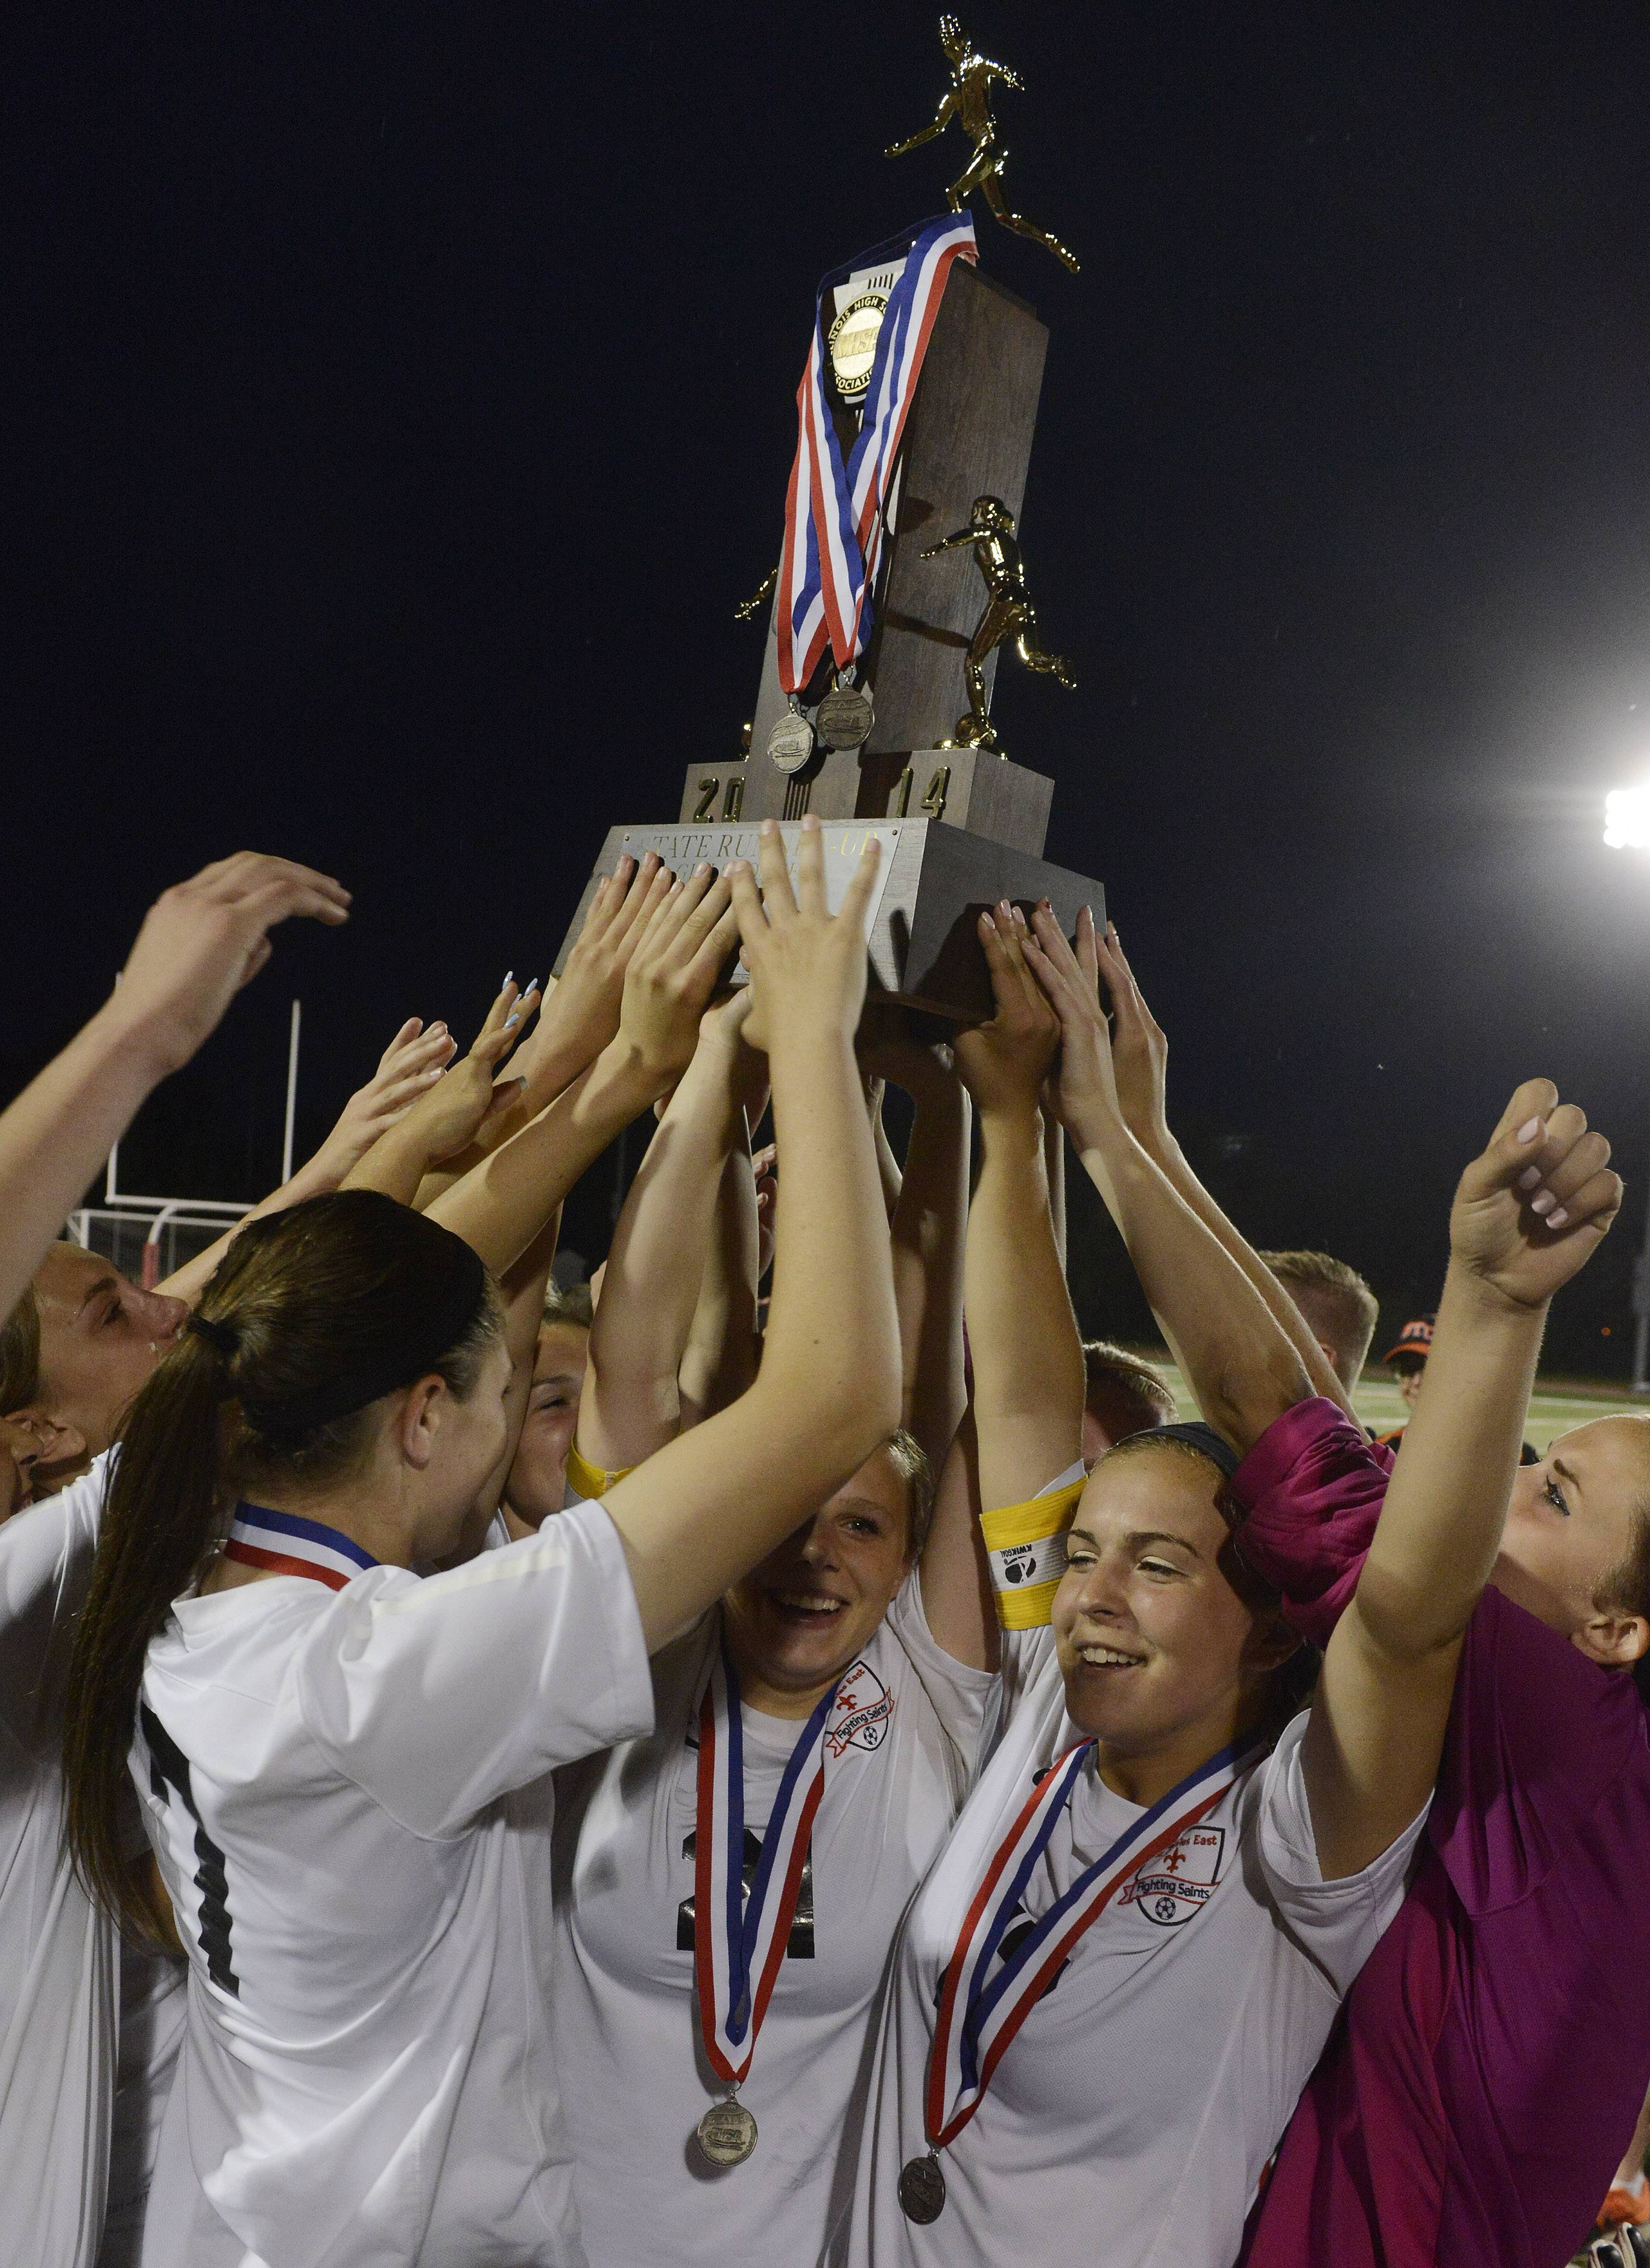 St. Charles East players hold up their second-place trophy after losing 1-0 to New Trier during the girls soccer Class 3A state final at North Central College in Naperville Saturday.